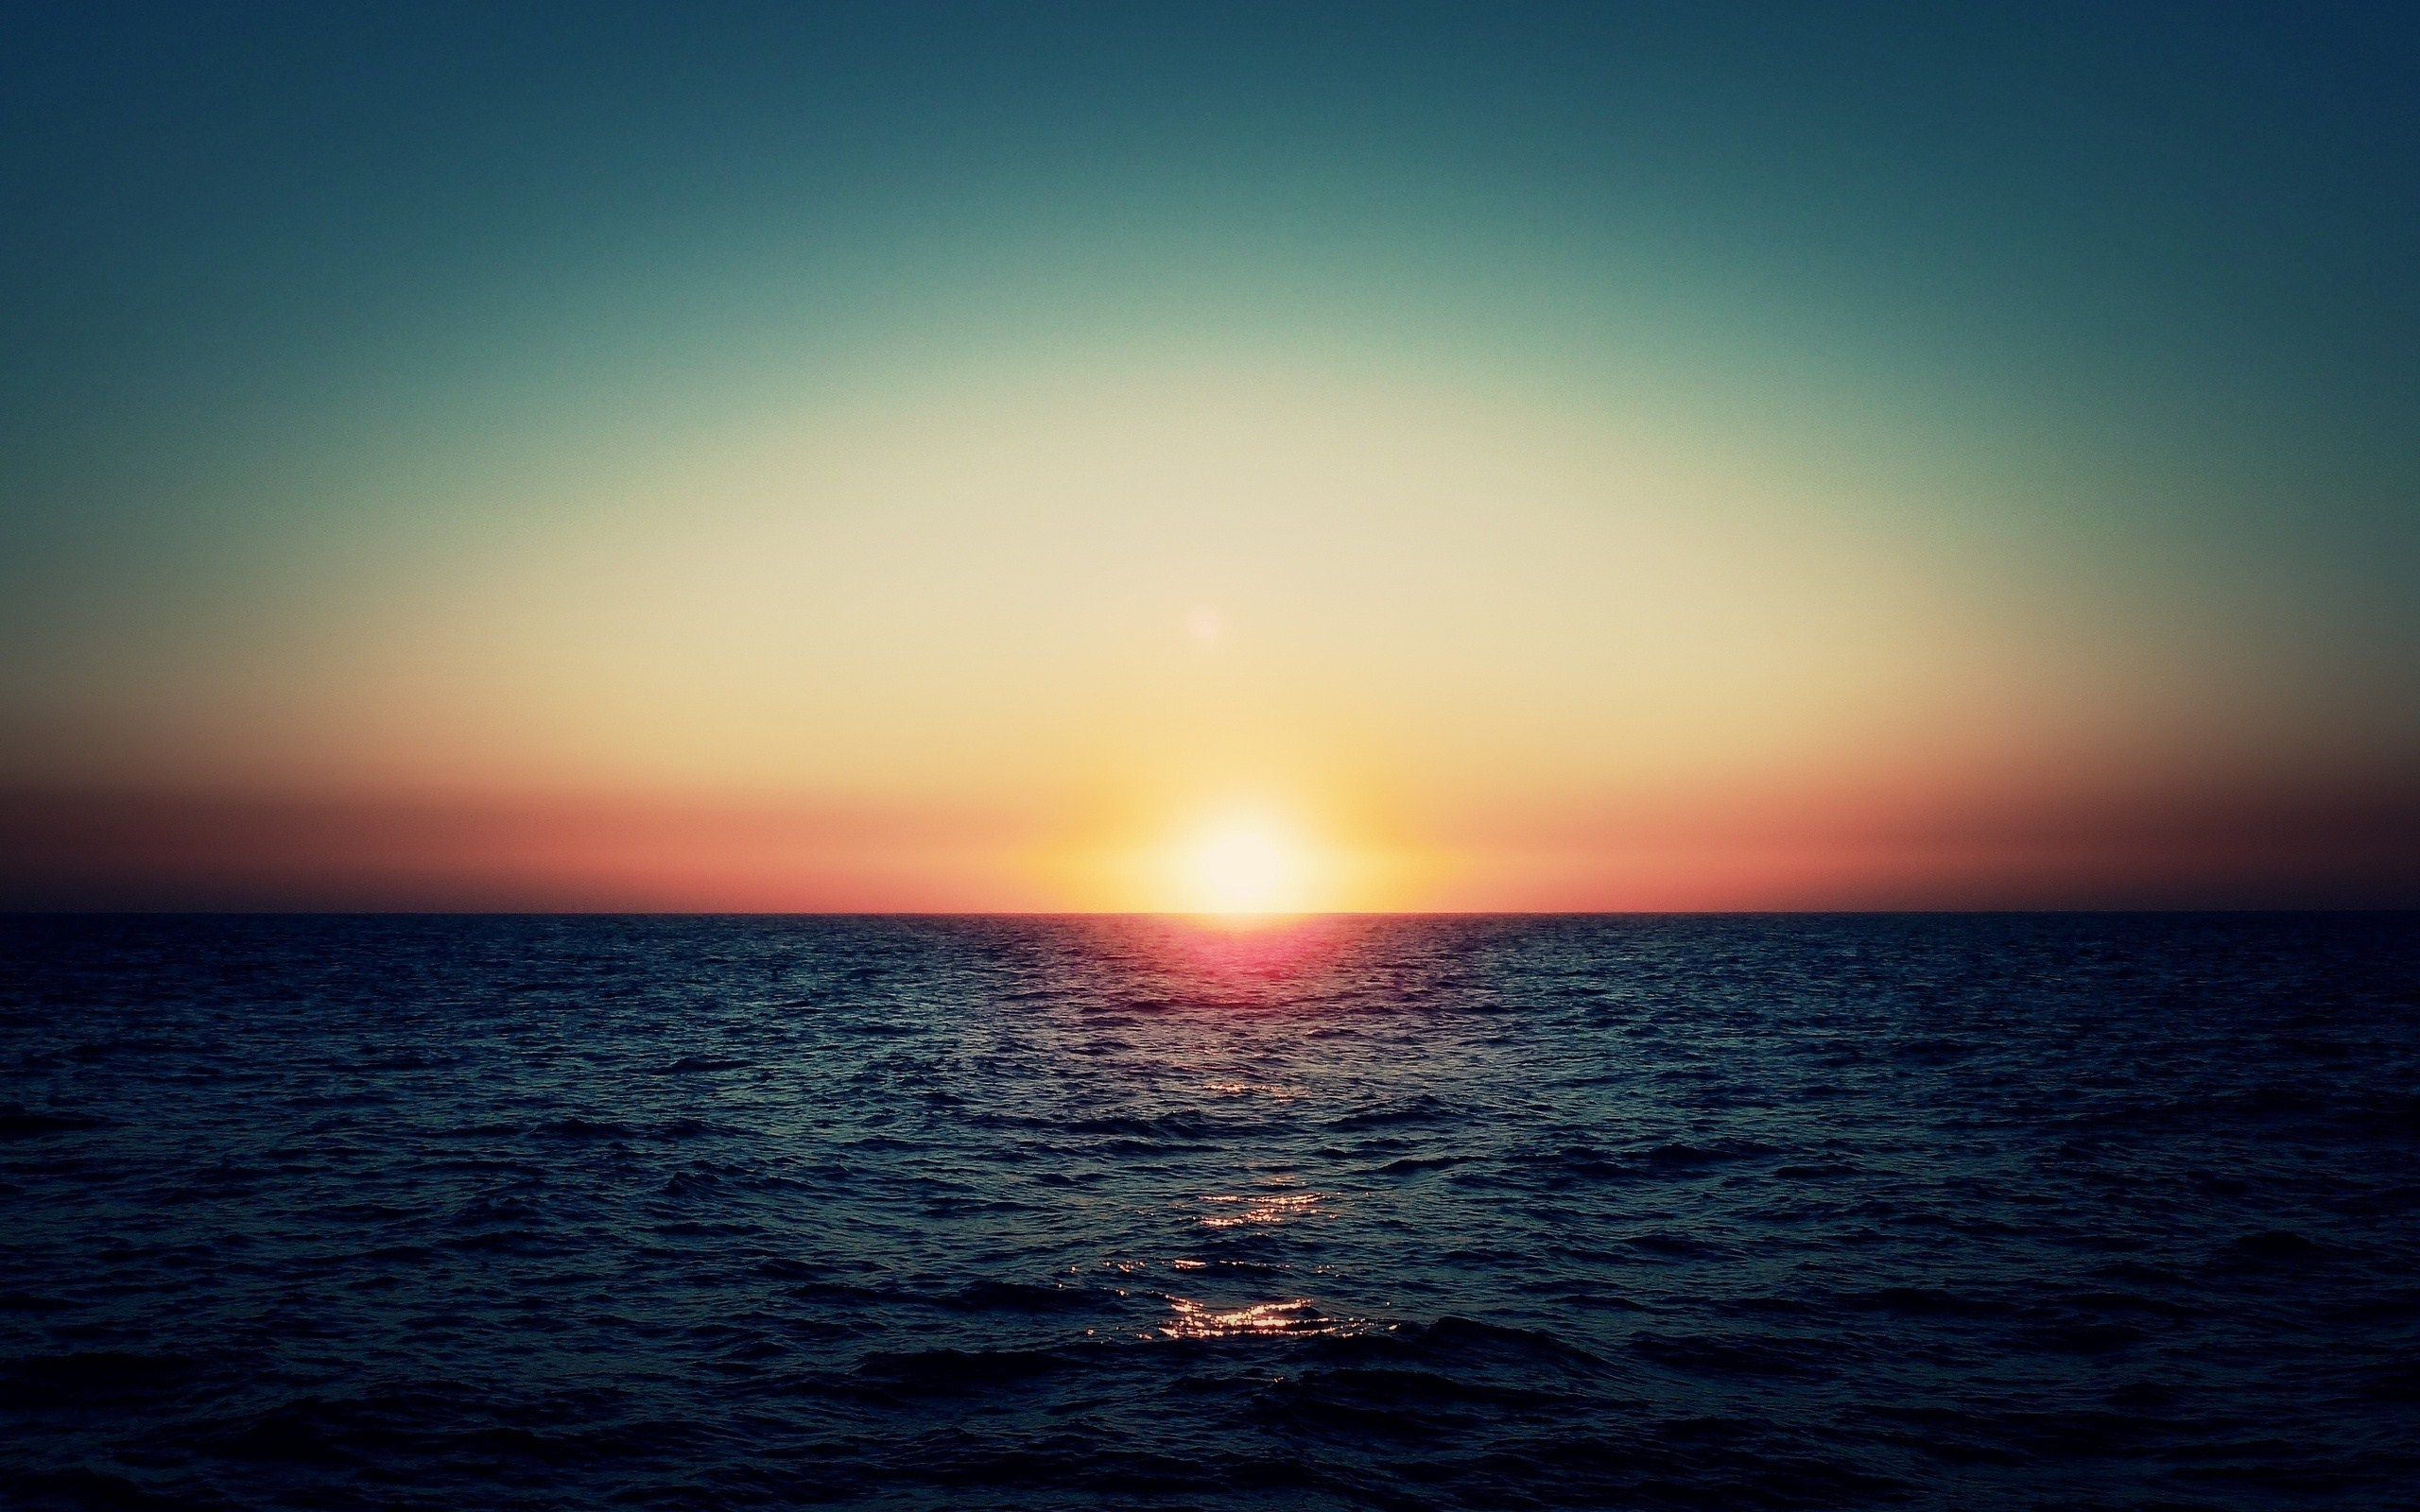 Sea Sundown Wallpaper